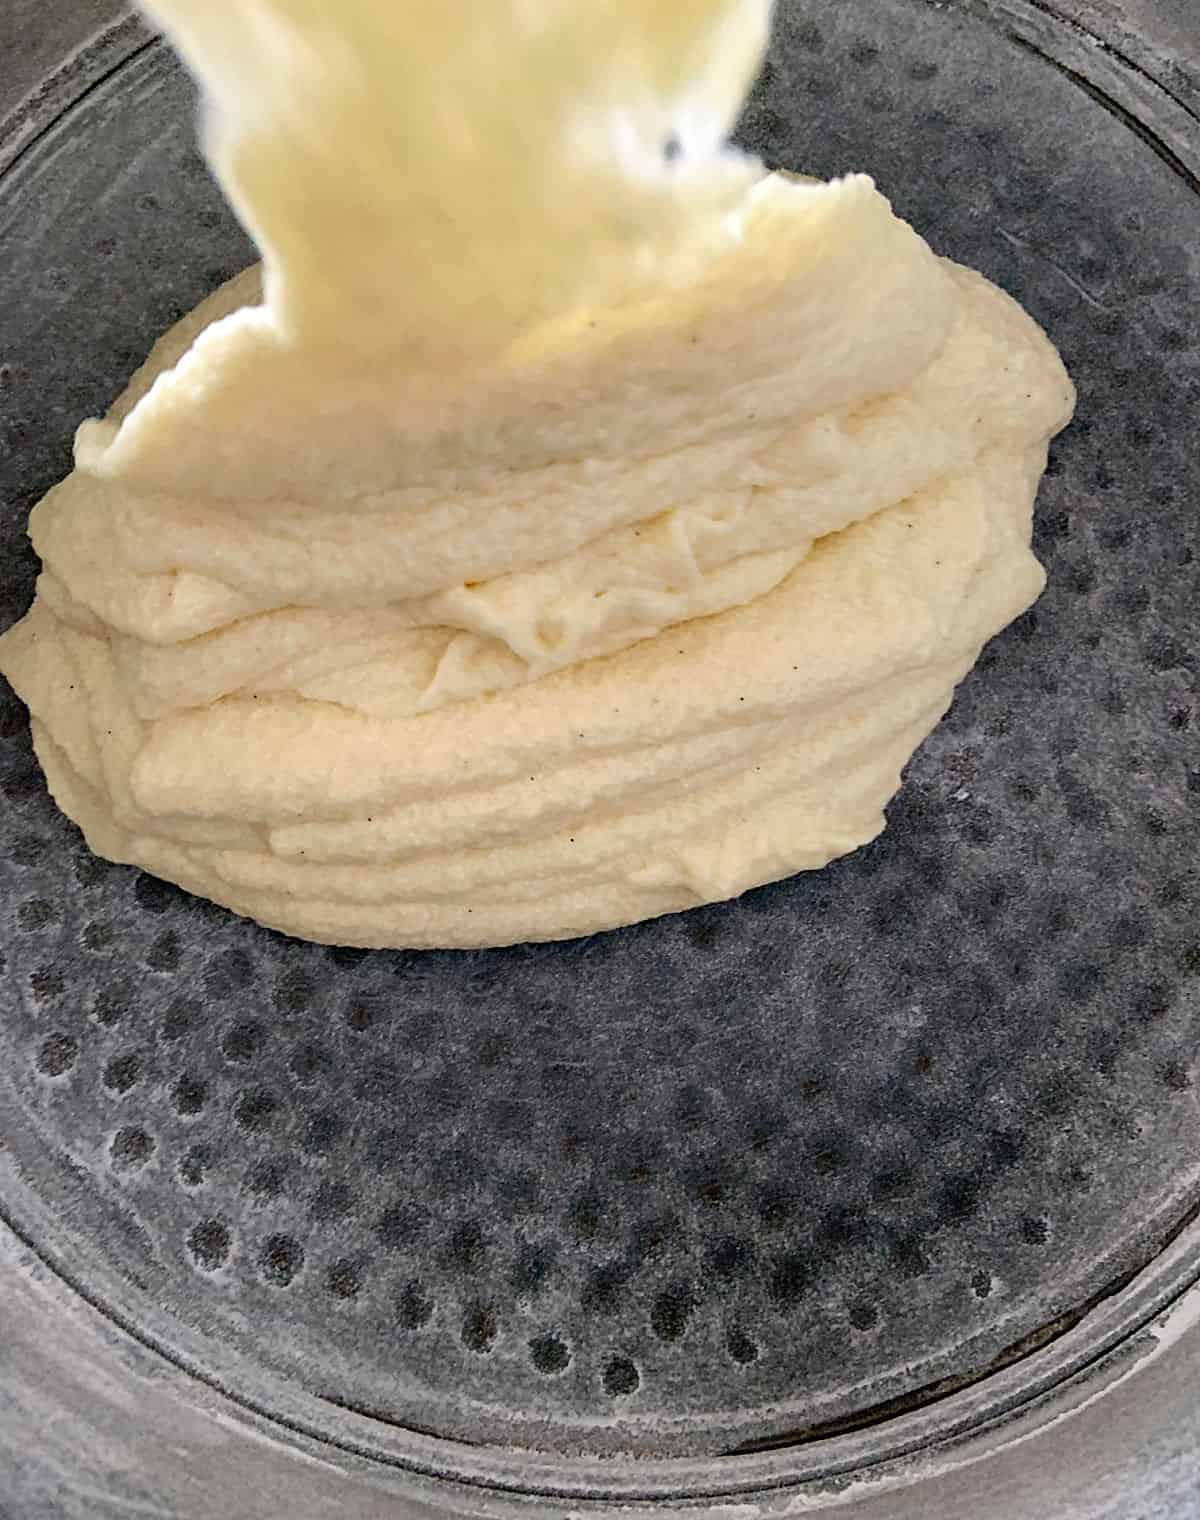 Pouring thick vanilla cake batter onto dark metal cake pan